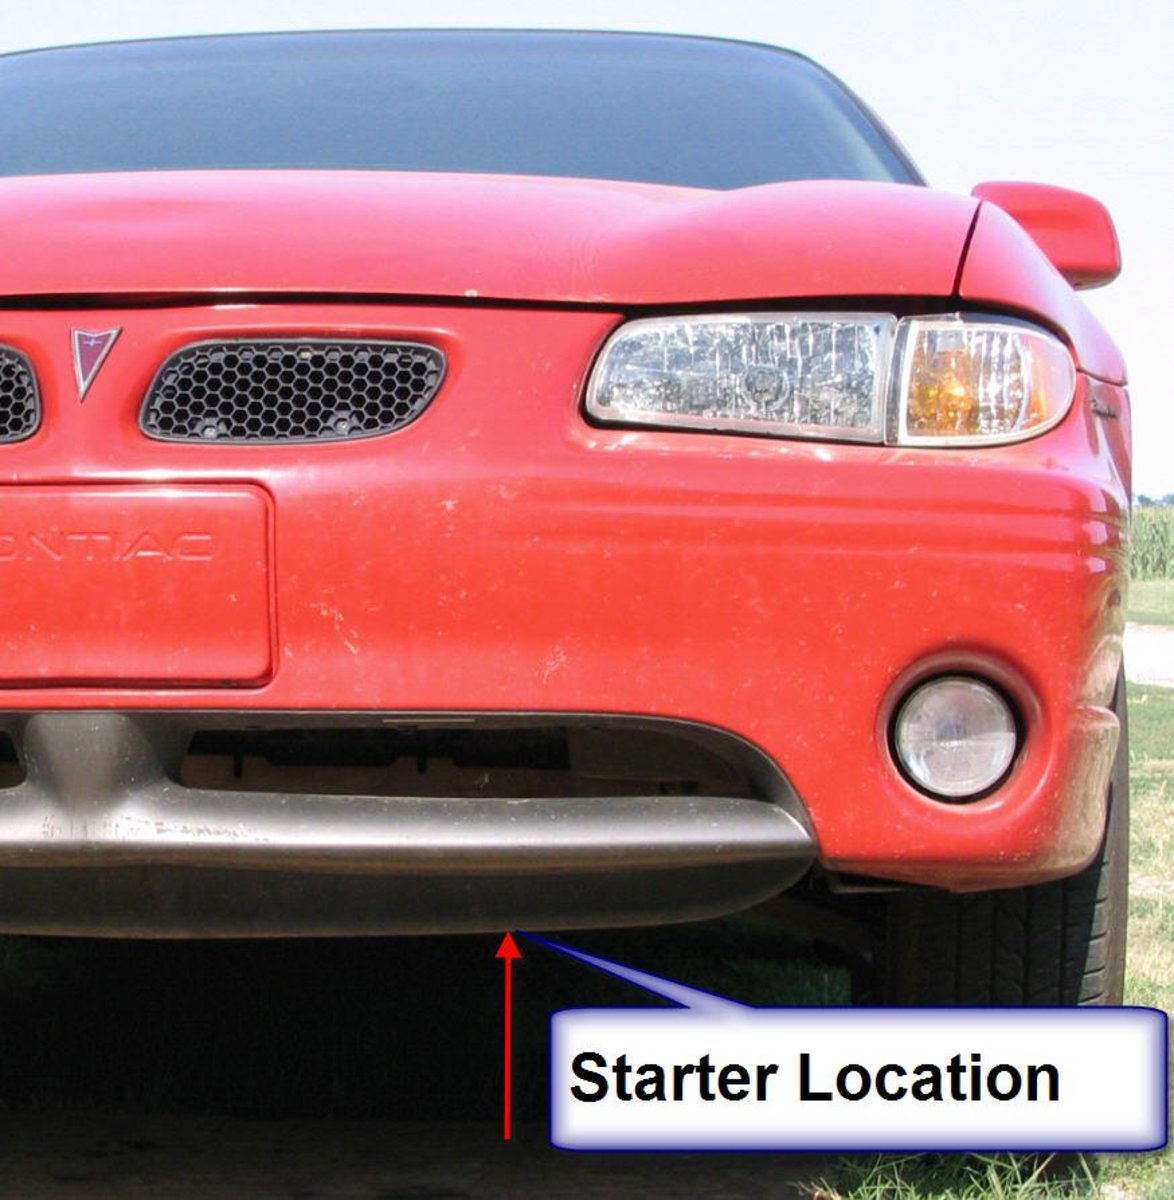 [SCHEMATICS_4HG]  Starter Removal: 1999 Pontiac Grand Prix - AxleAddict - A community of car  lovers, enthusiasts, and mechanics sharing our auto advice | 1999 Pontiac Grand Am Starter Wiring |  | AxleAddict